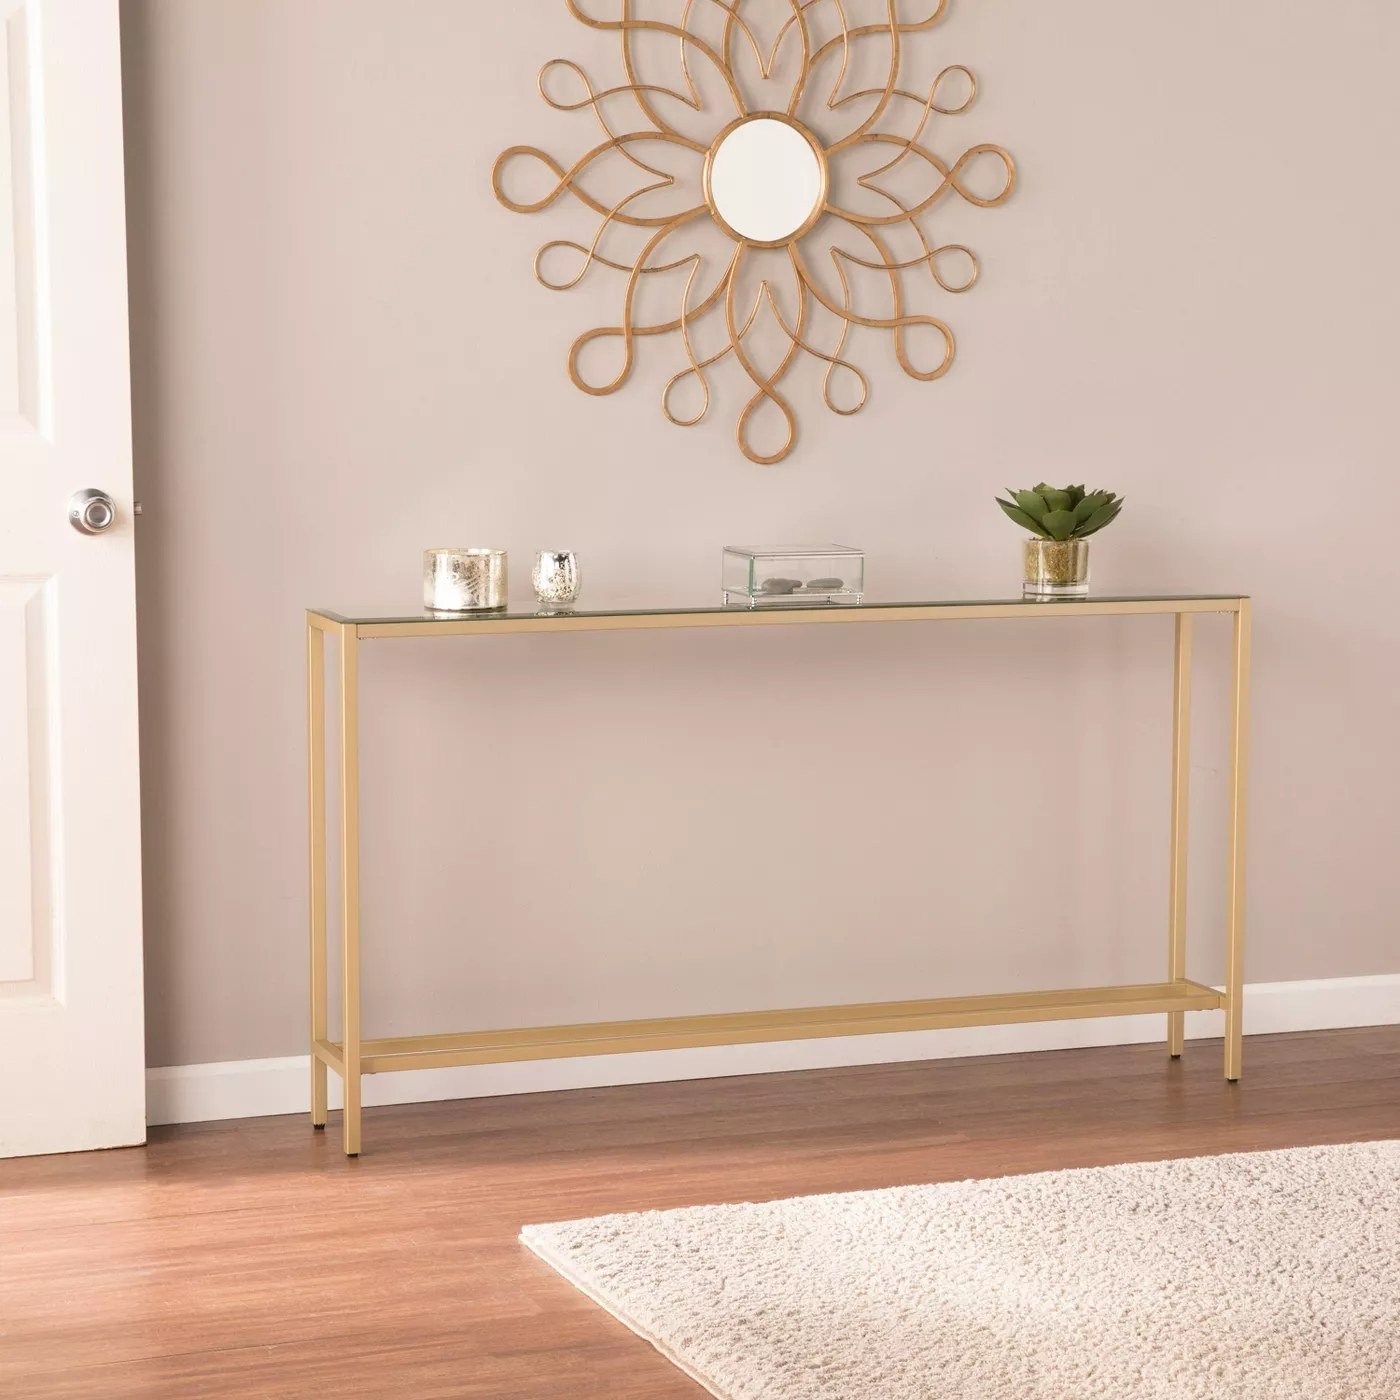 The gold and glass console table